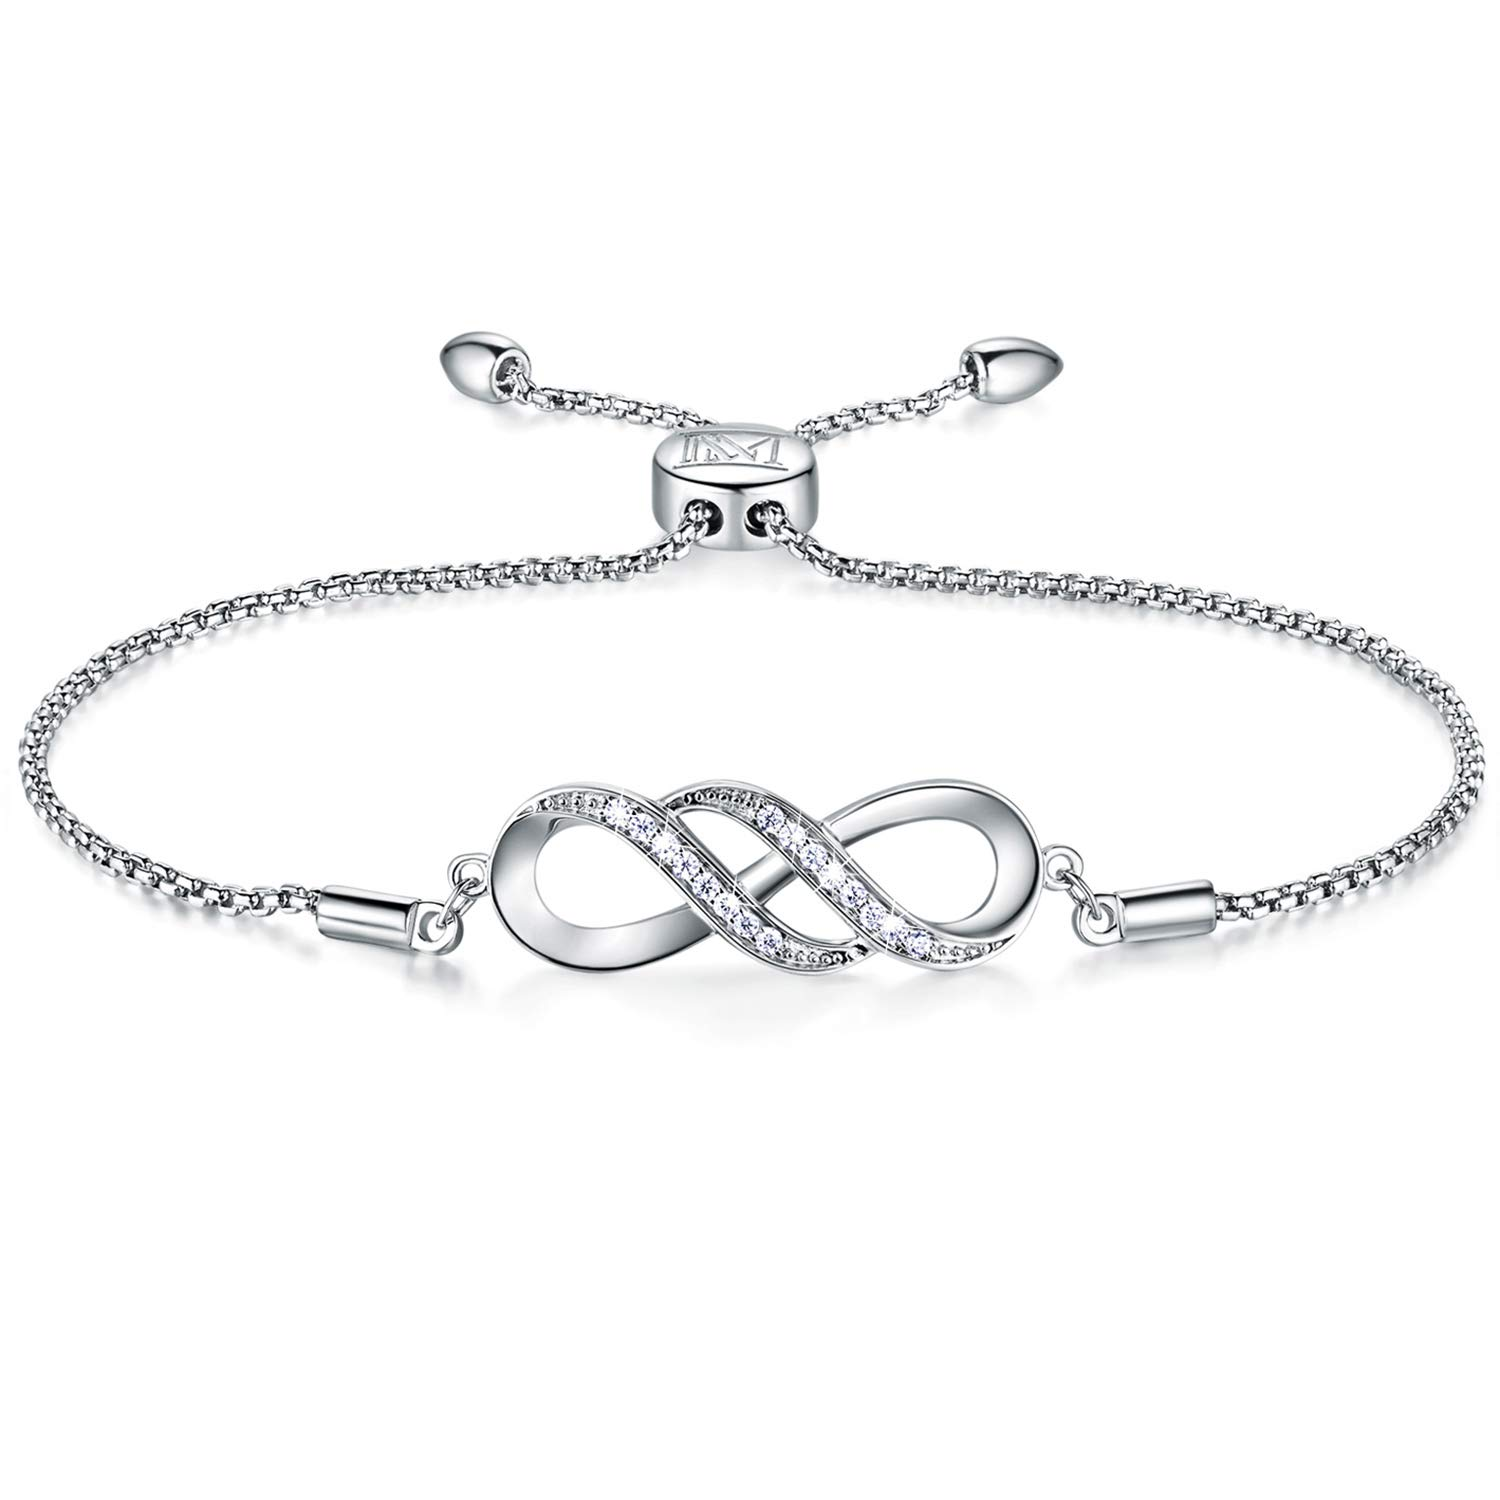 NINAMAID Women Girl Silver Infinity Endless Love Symbol Charm Bracelet Jewelry Gift with Sparking Crystal Bangle Bracelets for Friendship/Sister/Mother/Daughter